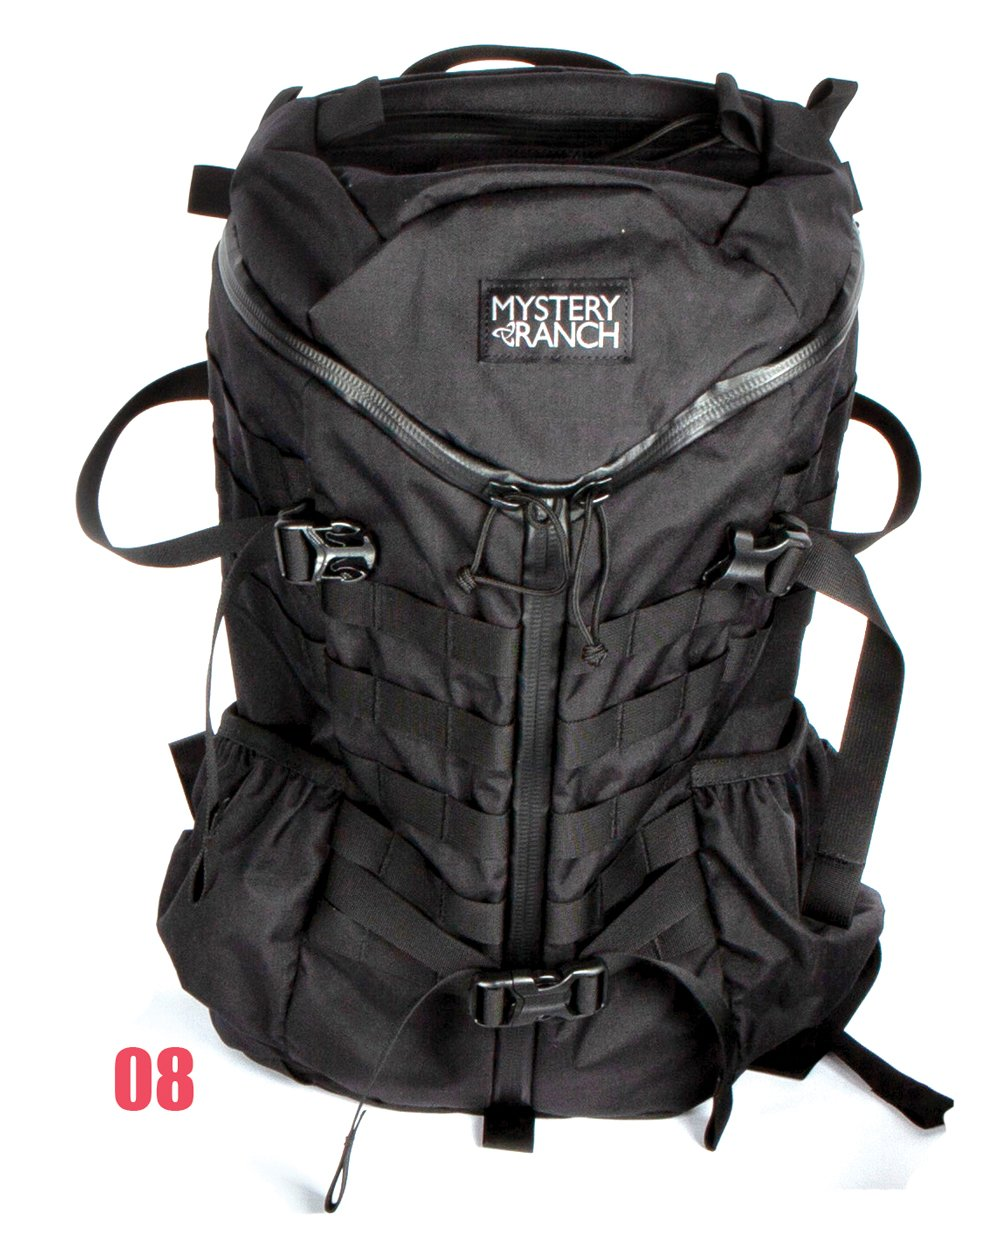 Mystery Ranch 2-Day Assault Pack hiking supplies